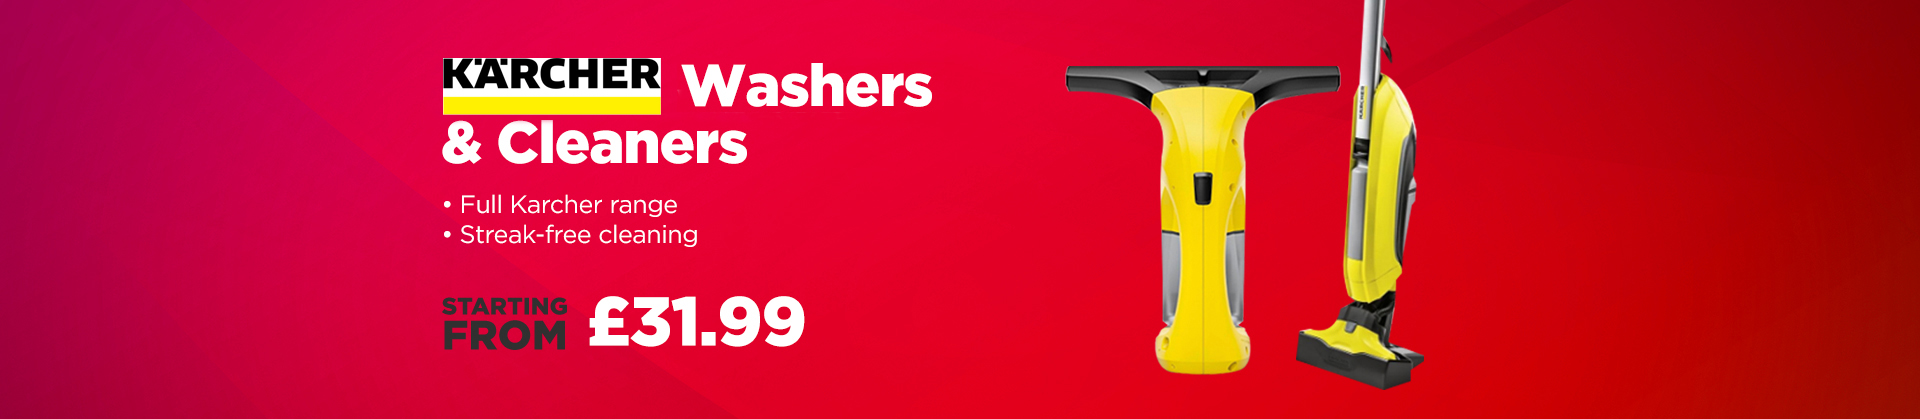 Great delas on Karcher Washers and Cleaners